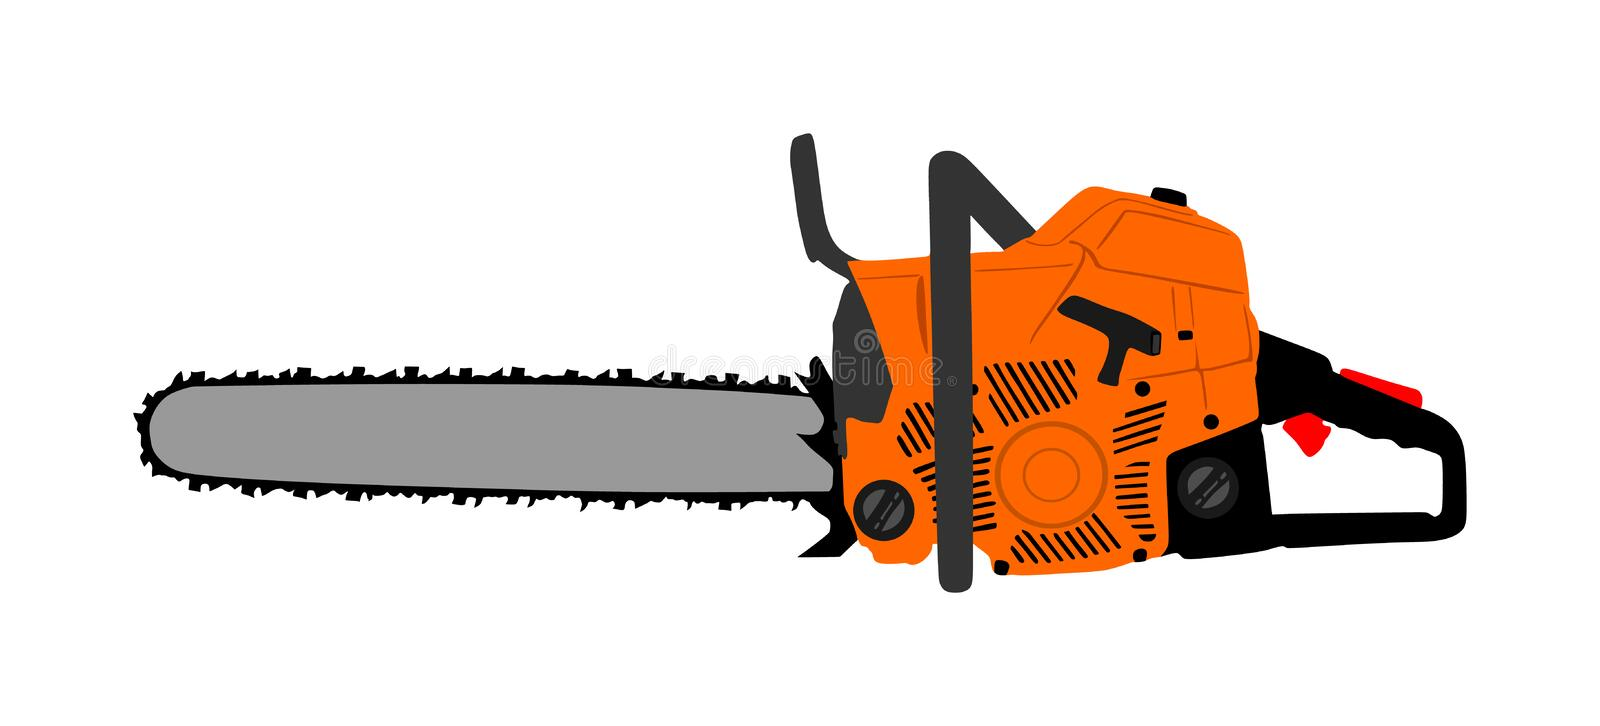 Chainsaw vector illustration isolated on white background. Hard industry job equipment. stock illustration